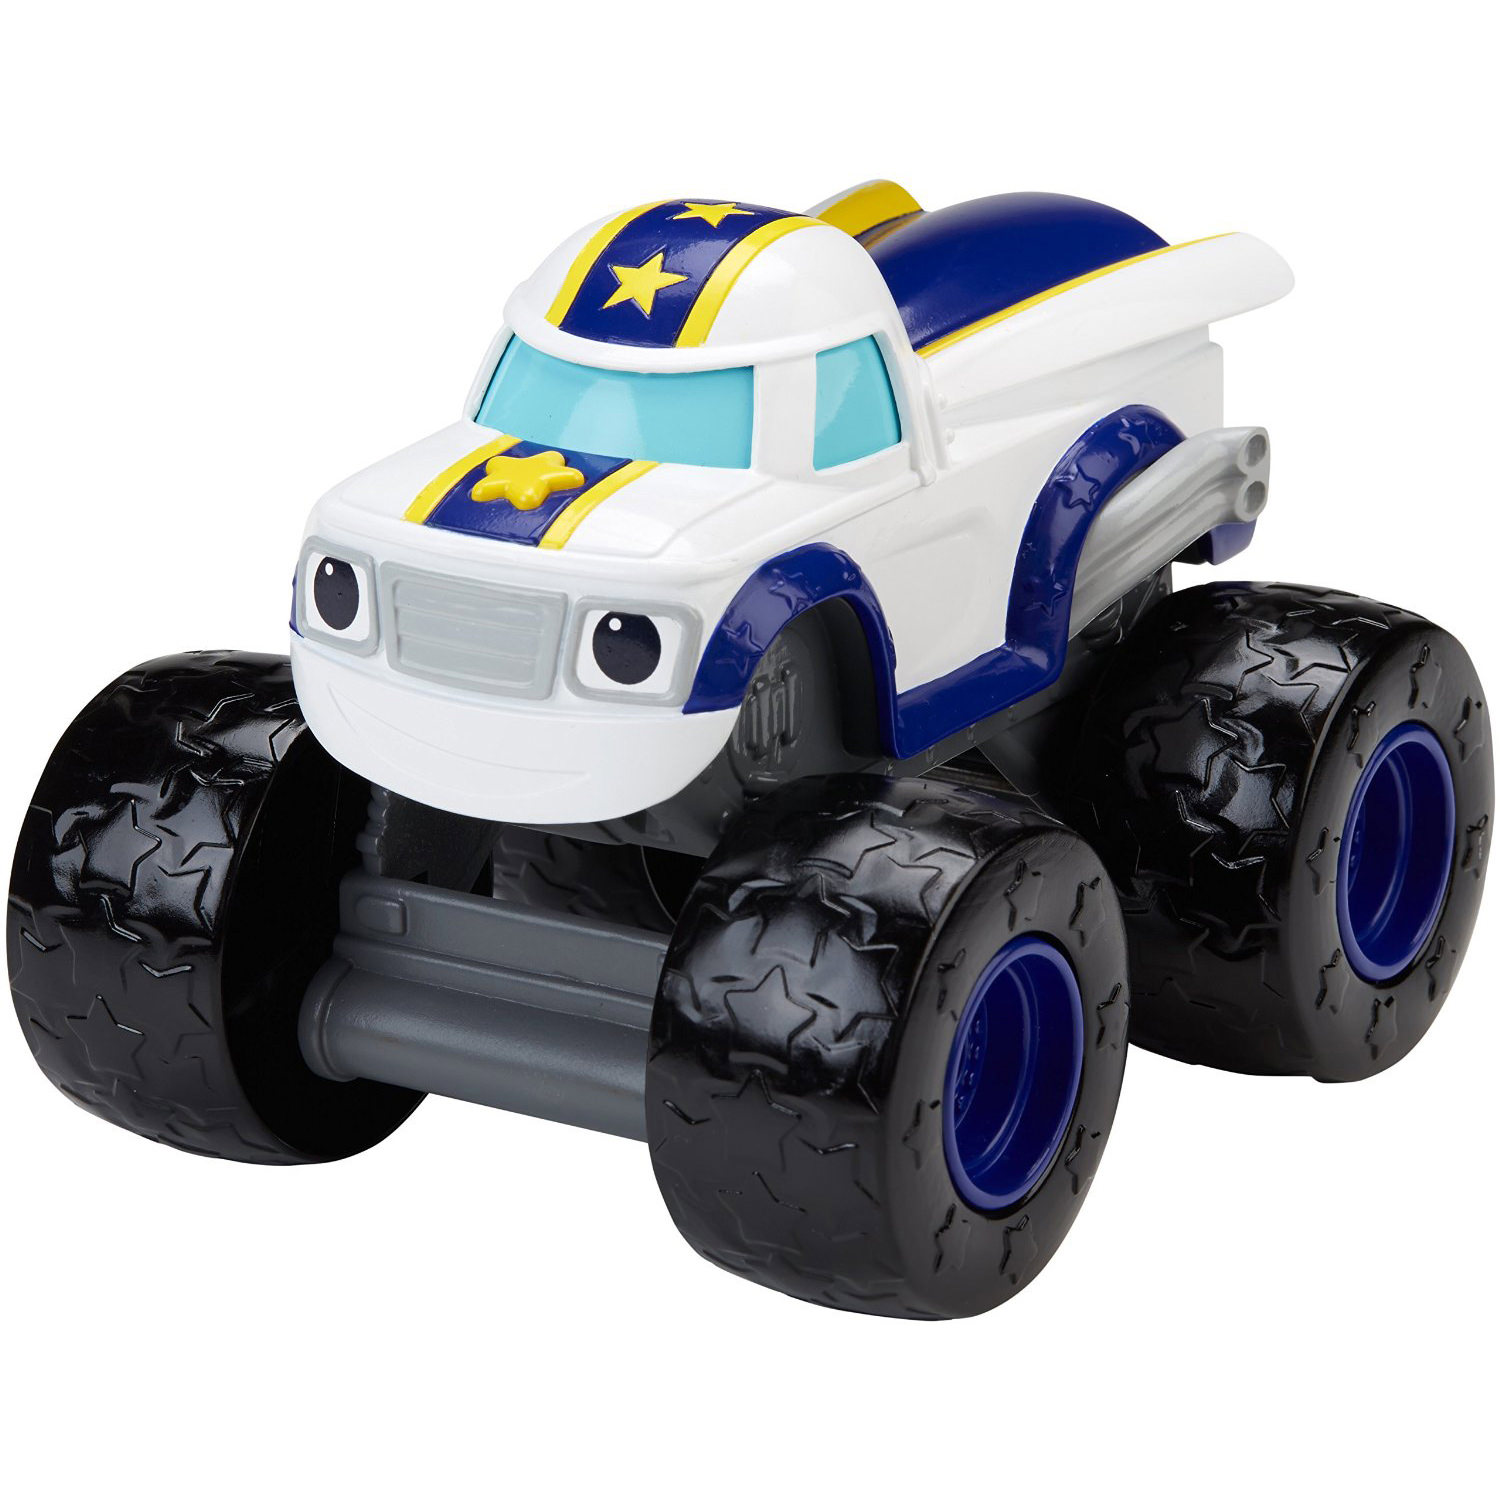 Blaze And The Monster Machines Buy